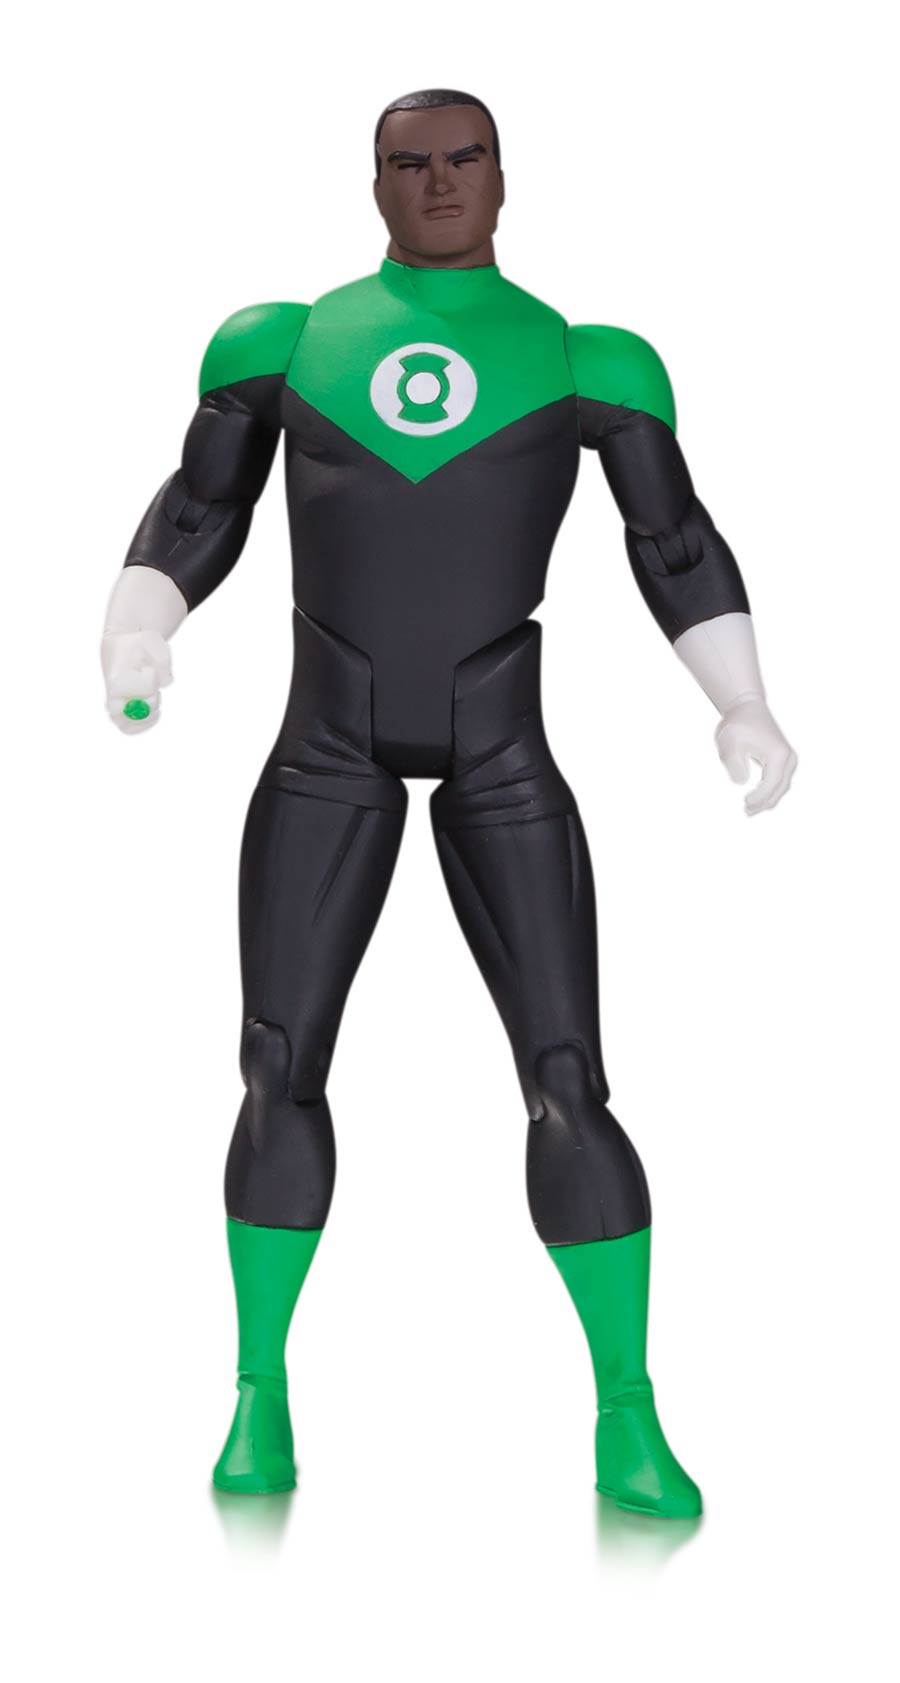 DC Comics Designer Darwyn Cooke Series 1 Green Lantern John Stewart Action Figure